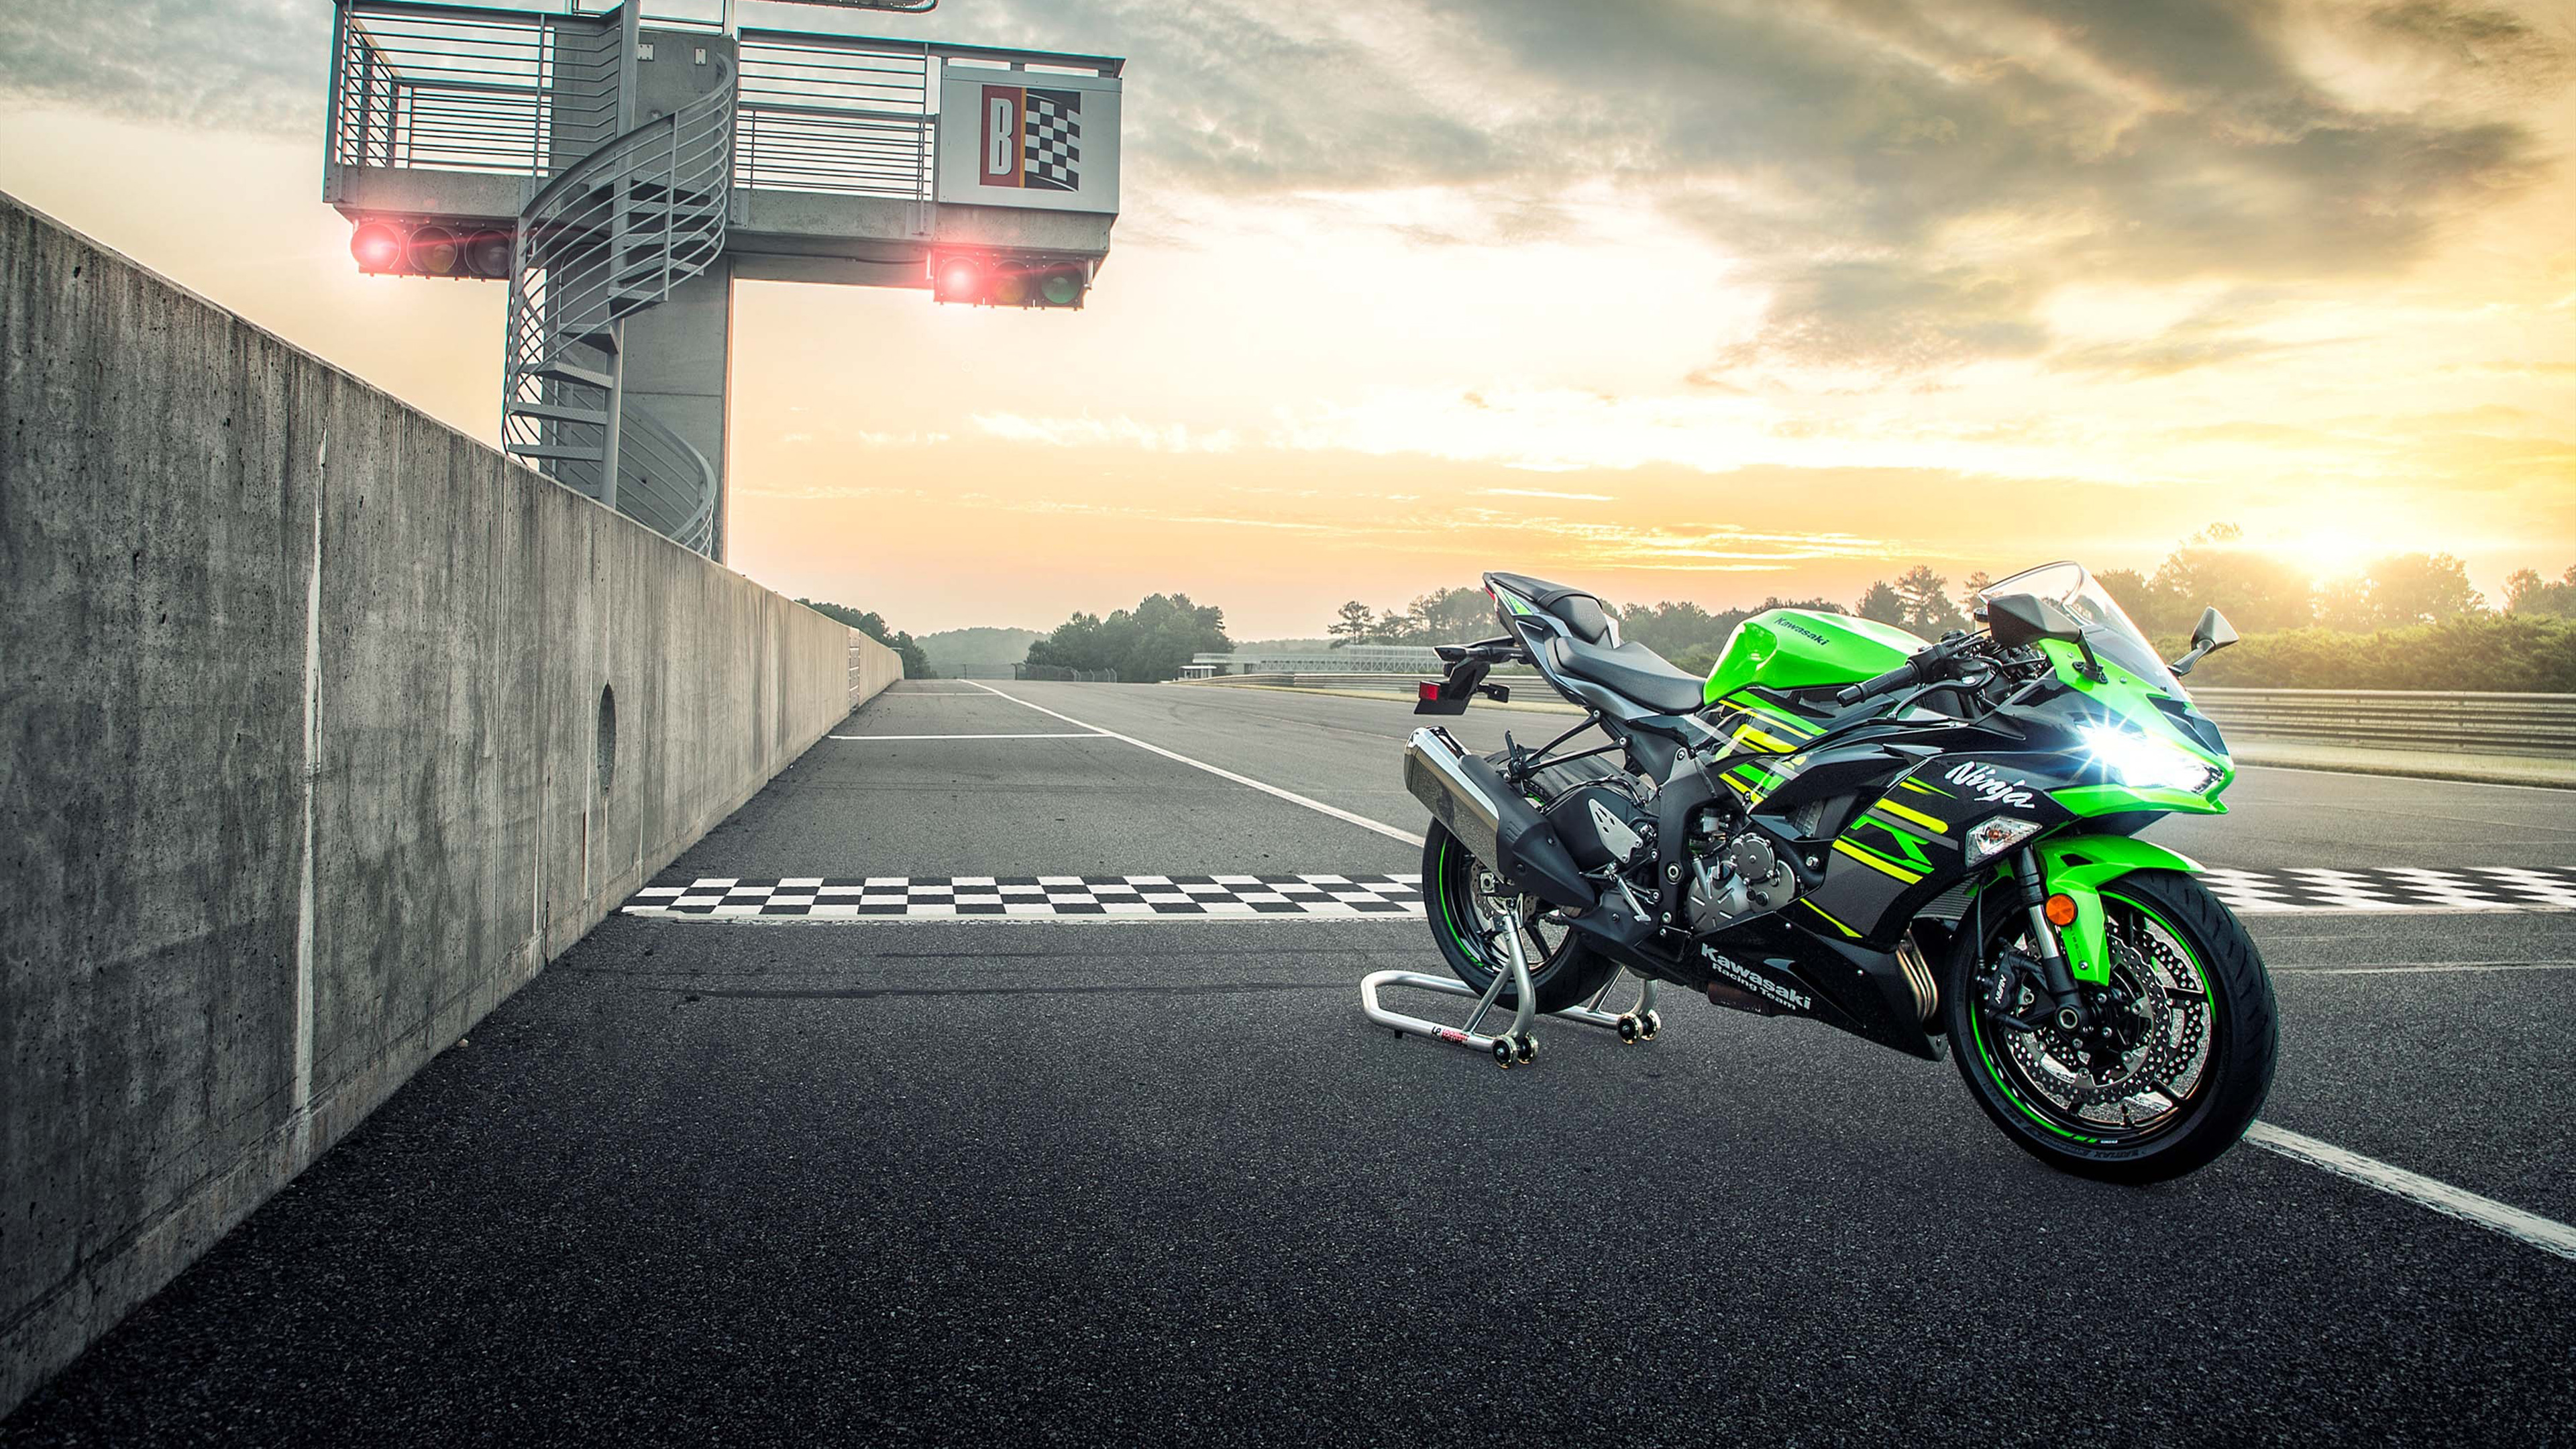 2019 Kawasaki Ninja ZX-6R 4K Wallpapers